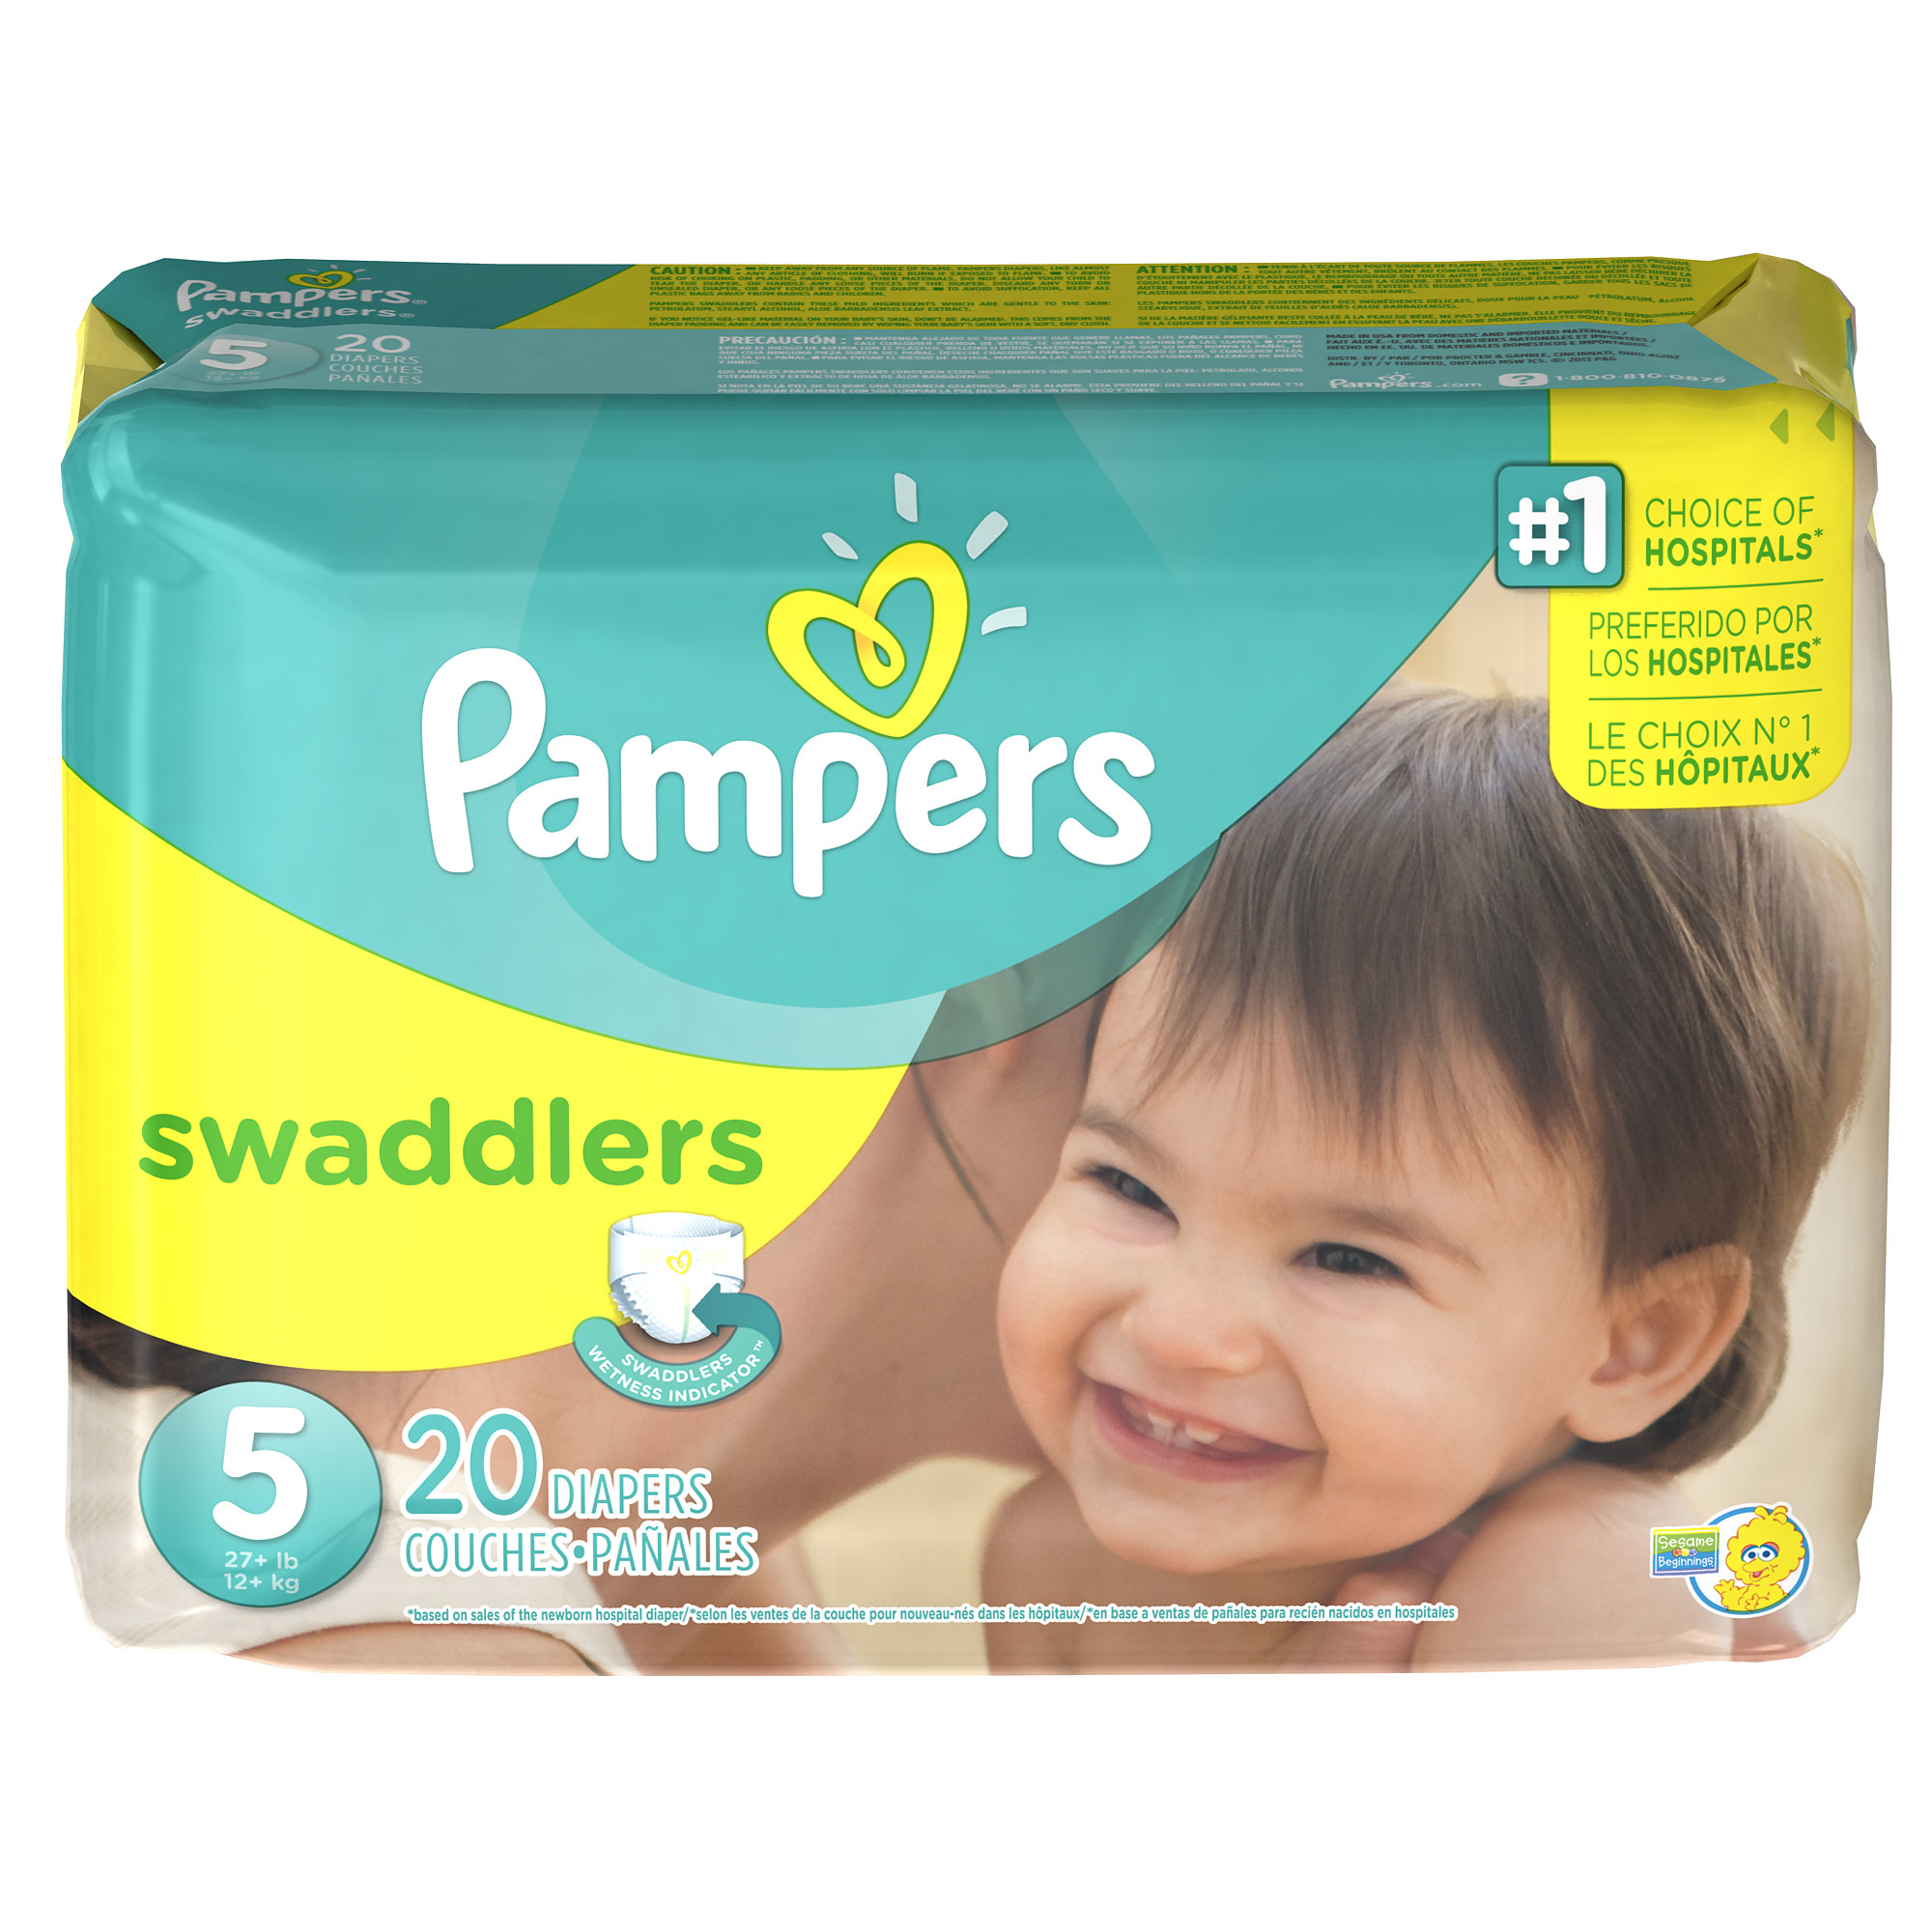 New Pampers Goes Beyond Ordinary Diapers To Deliver Our